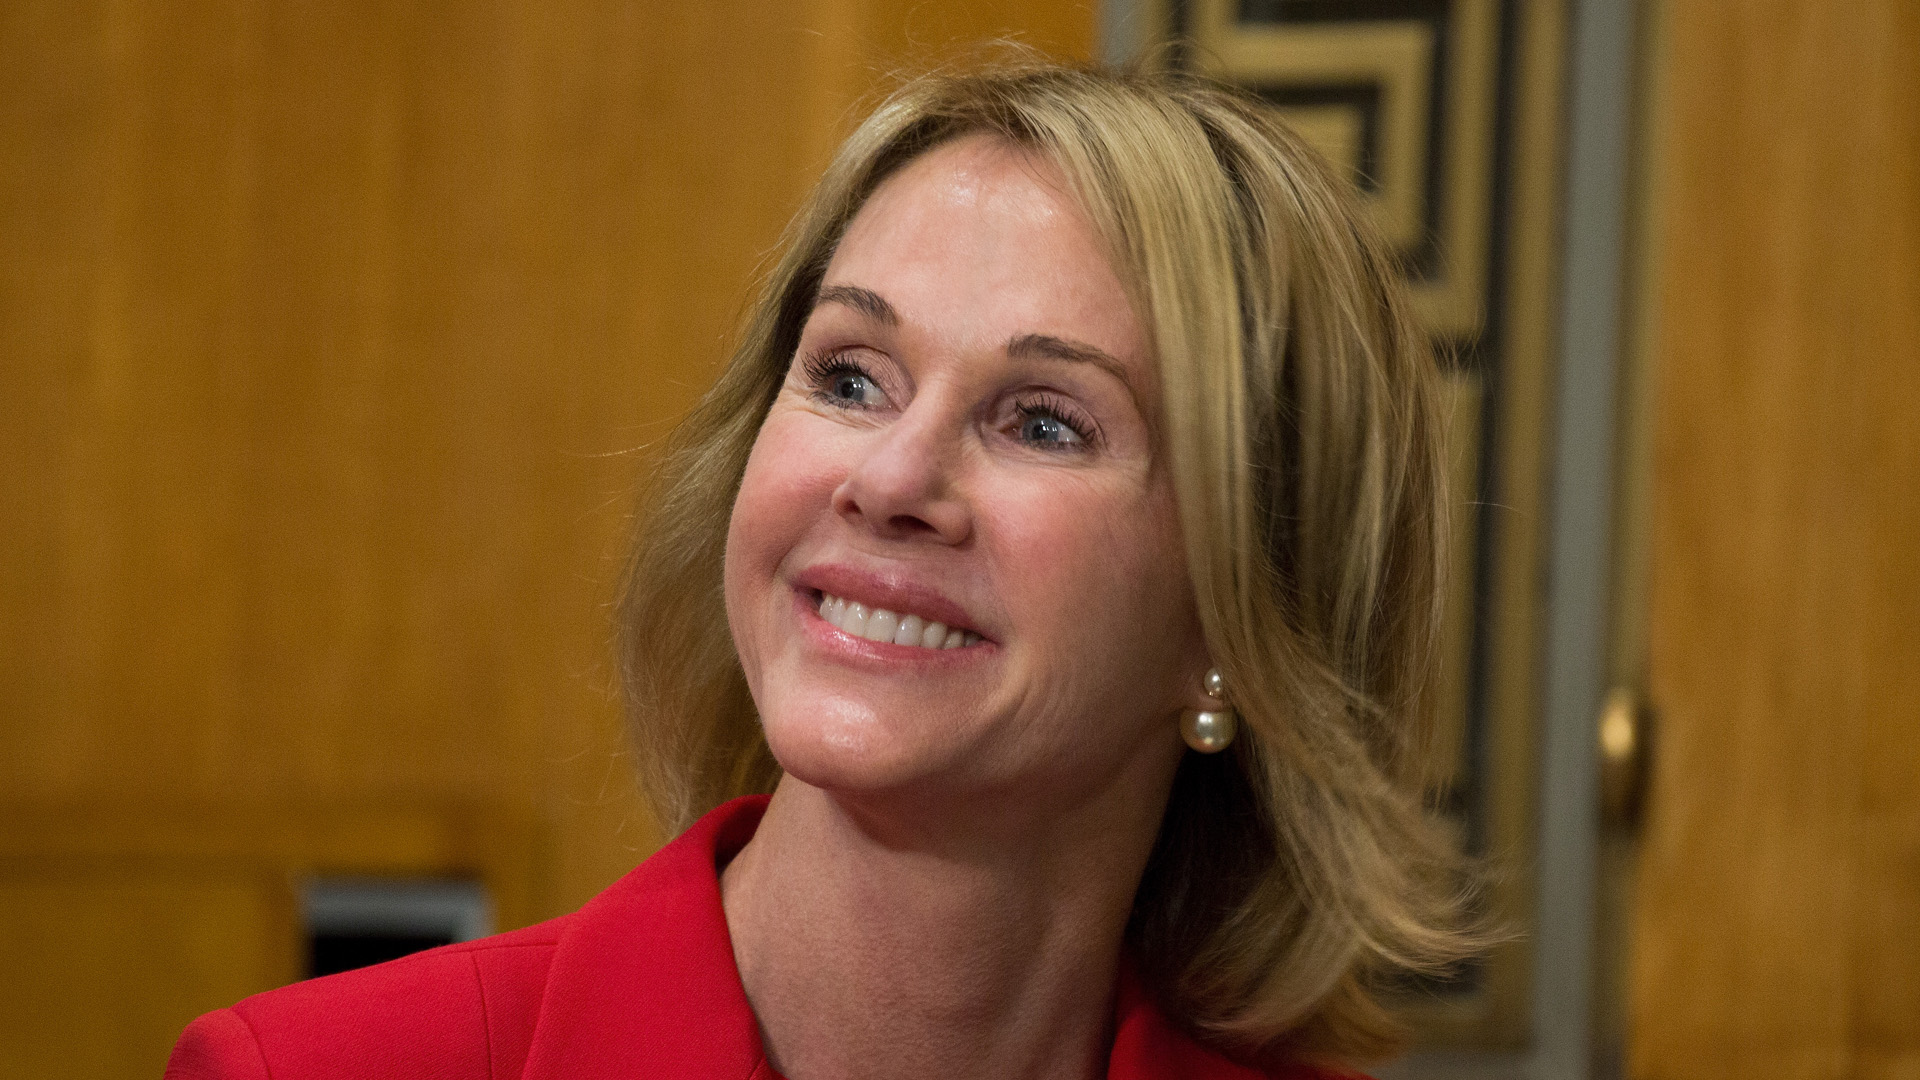 U.S. Ambassador Nominee Kelly Craft speaks on Capitol Hill on July 20, 2017 in Washington, DC. (Credit: Tasos Katopodis/Getty Images for Kelly Craft)